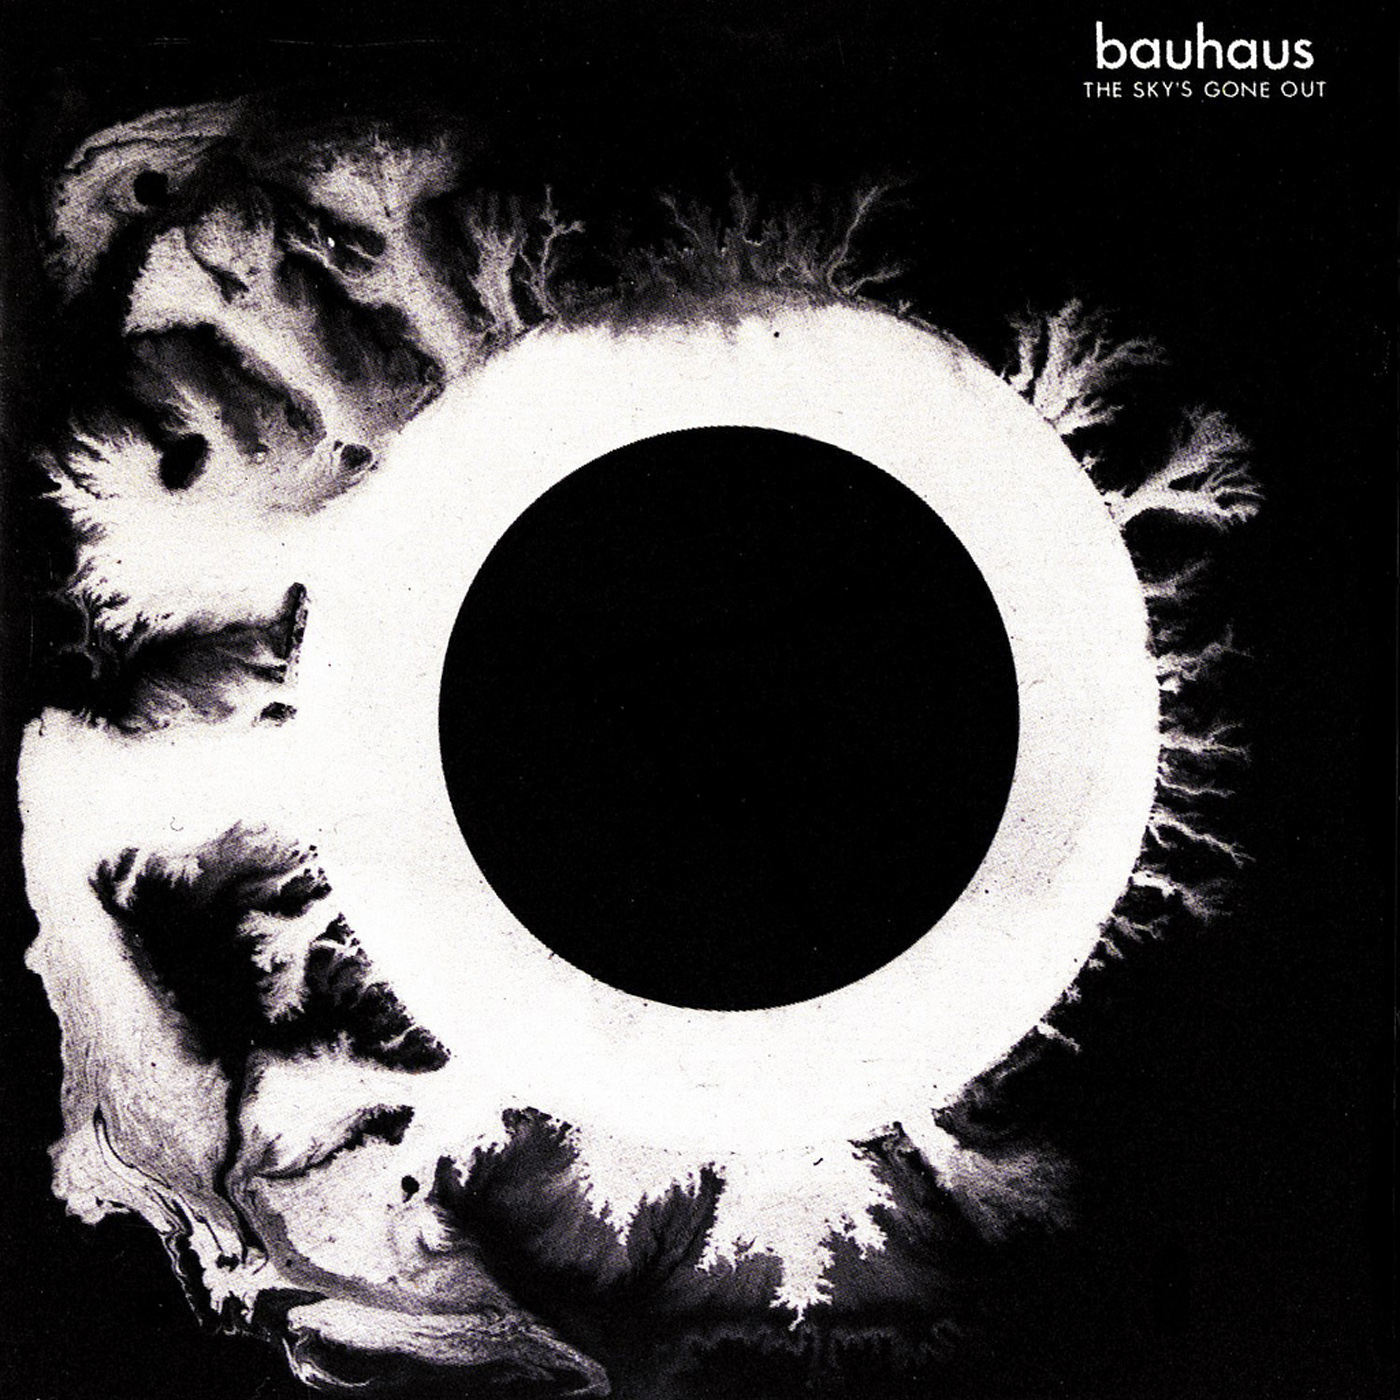 Bauhaus - The Sky's Gone Out (Beggars Banquet, 1982).